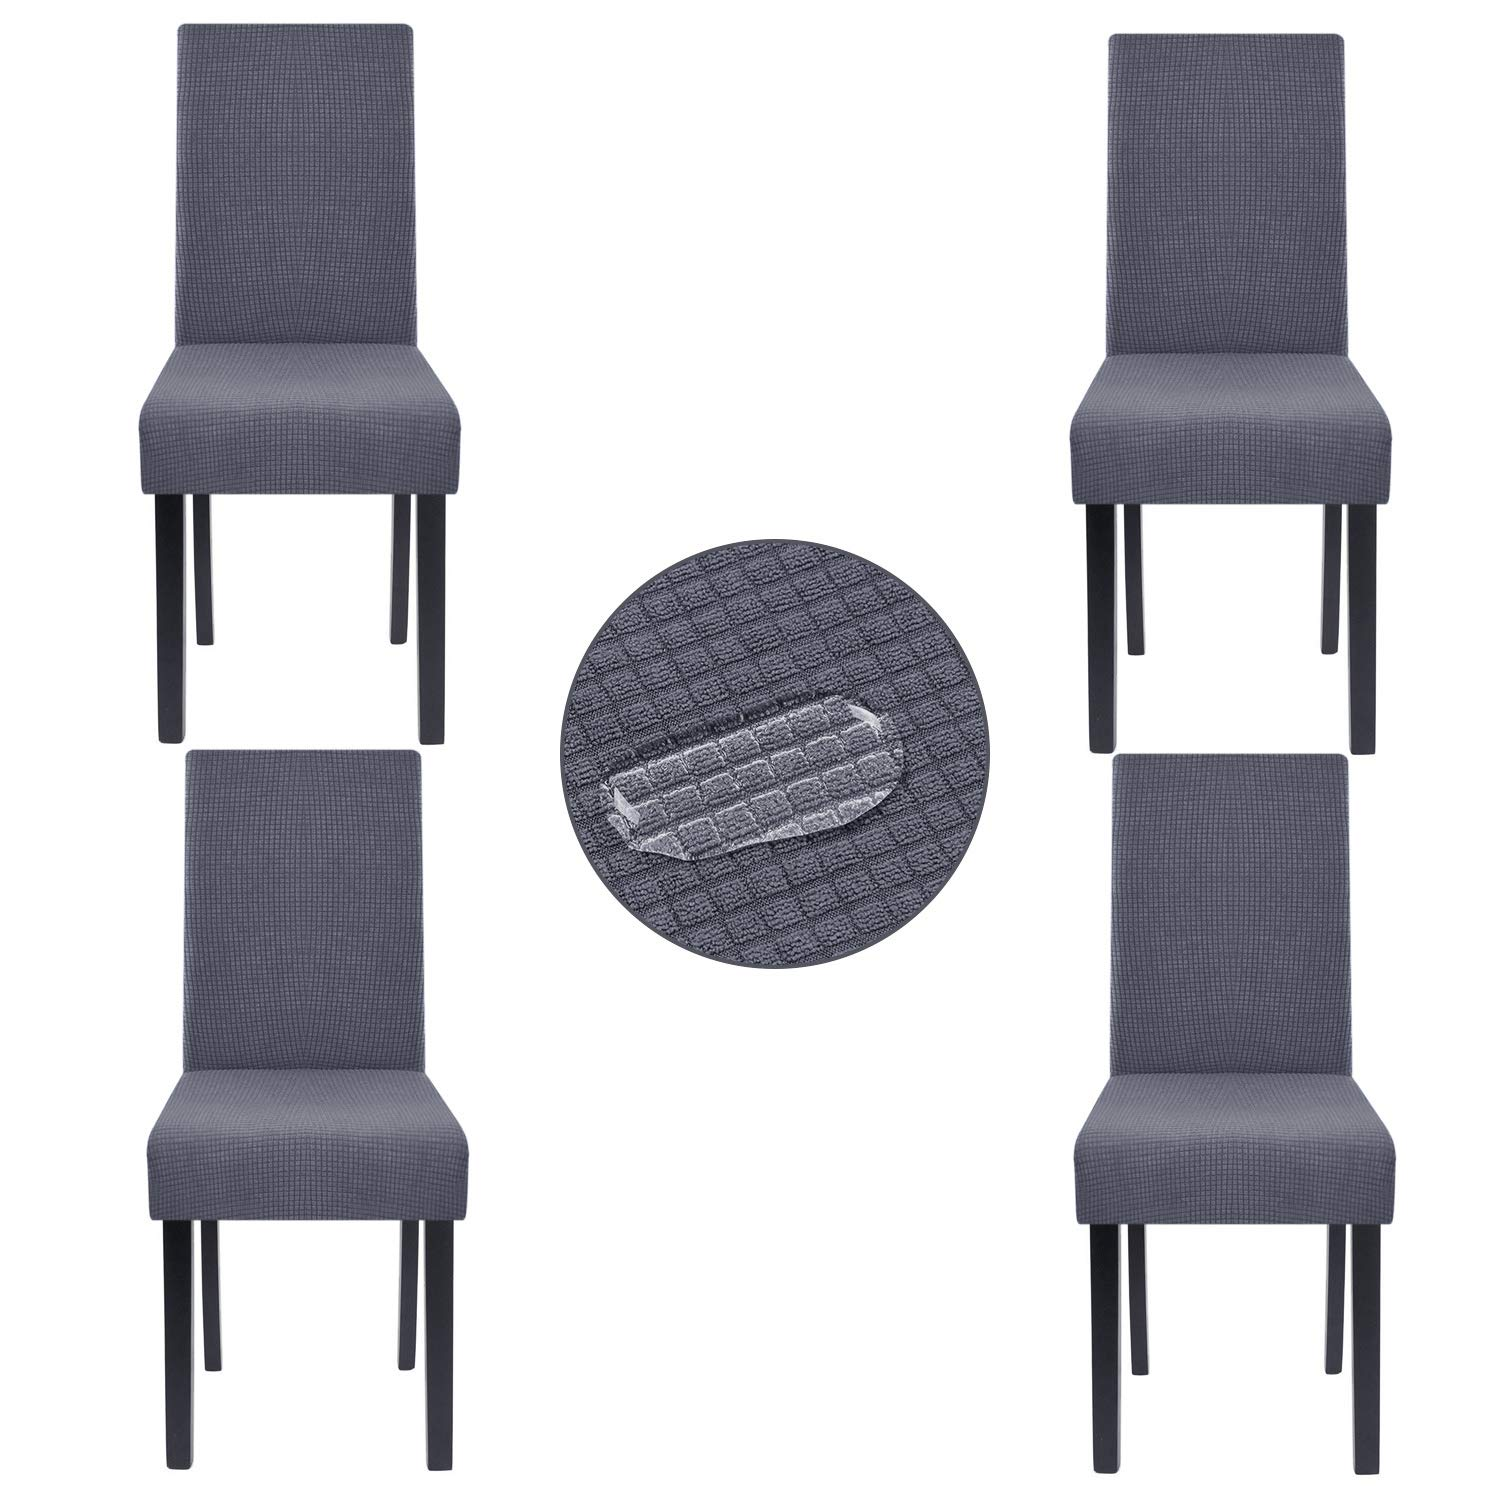 Homluxe High Stretch Chair Covers Dining Room Water Repellent Fabric Parson Chair Slipcovers (4, Dark Gray)